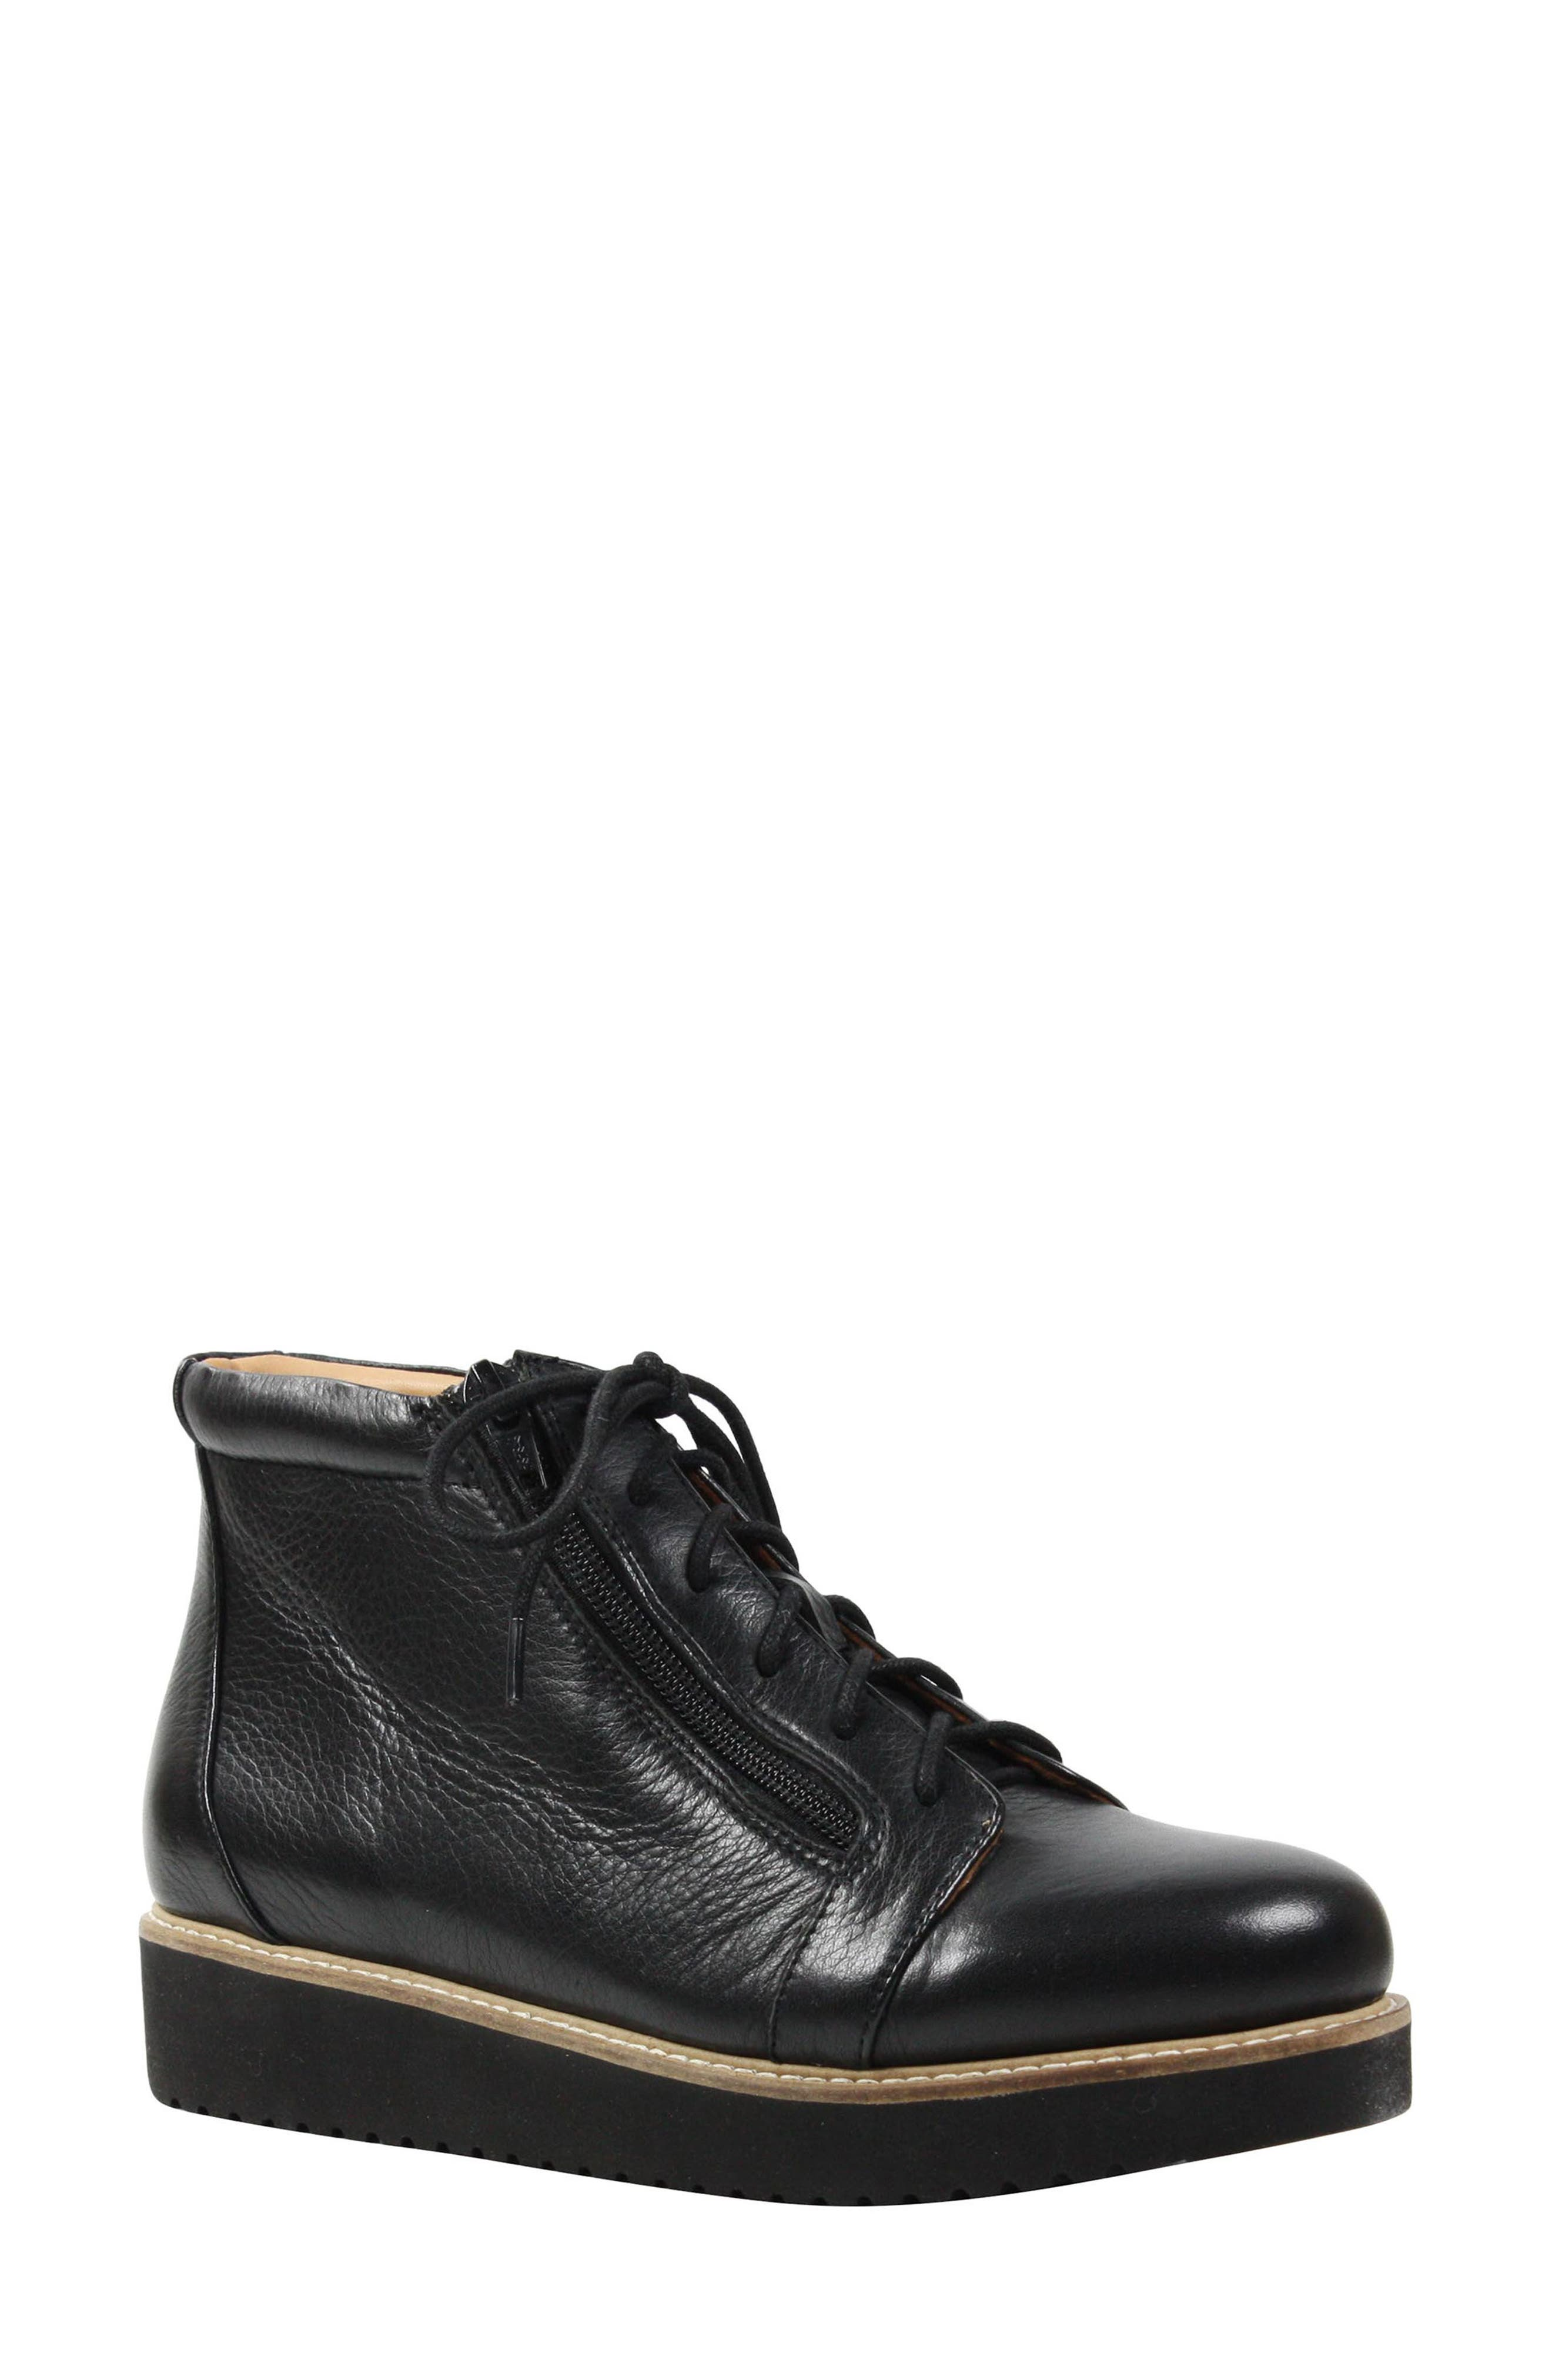 Xandrie Bootie,                         Main,                         color, Black Leather